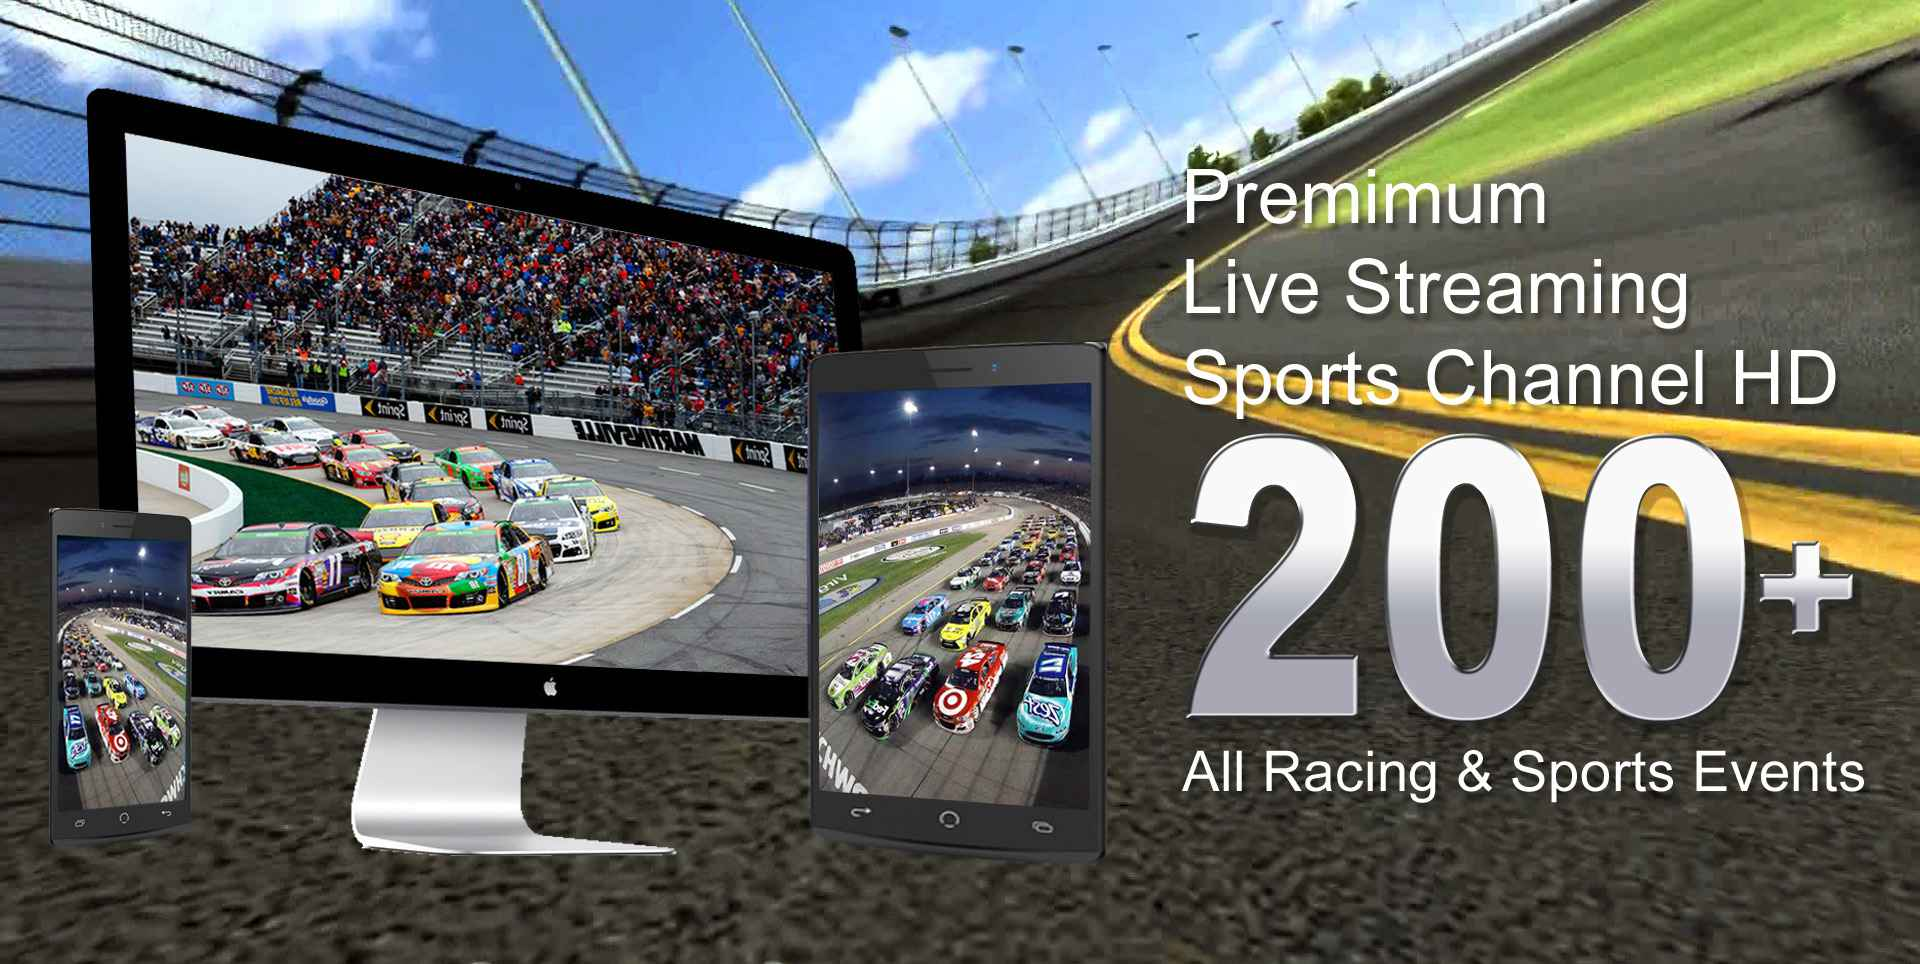 Watch Nascar UNOH 225 Race Online